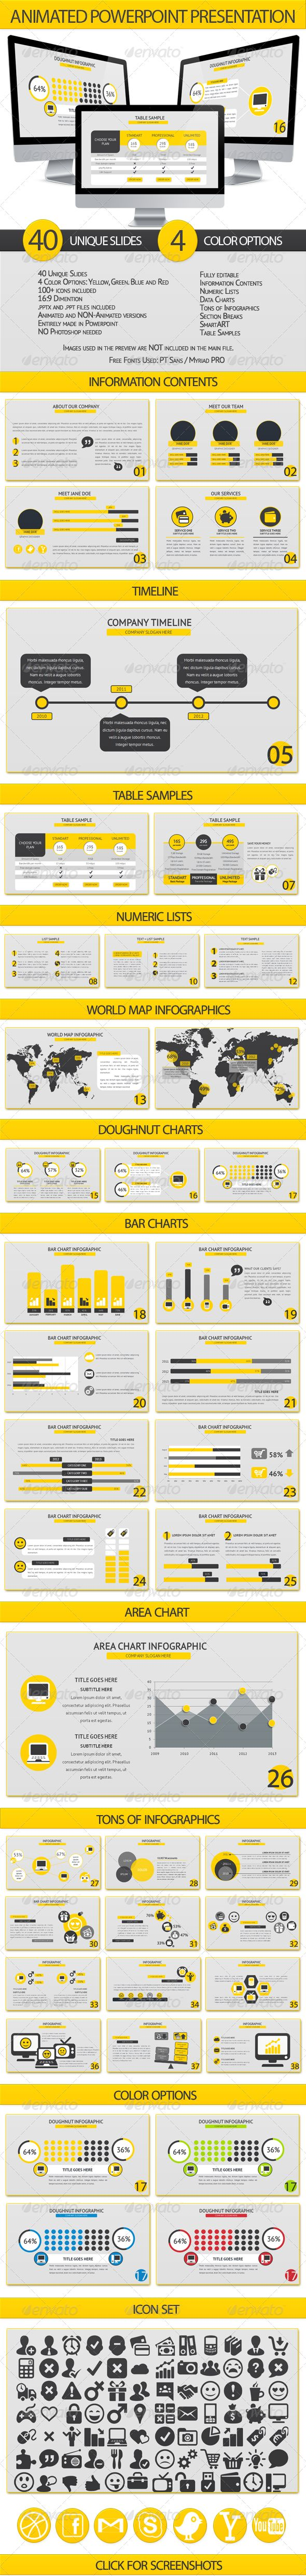 Animated Powerpoint Presentation - Business Powerpoint Templates